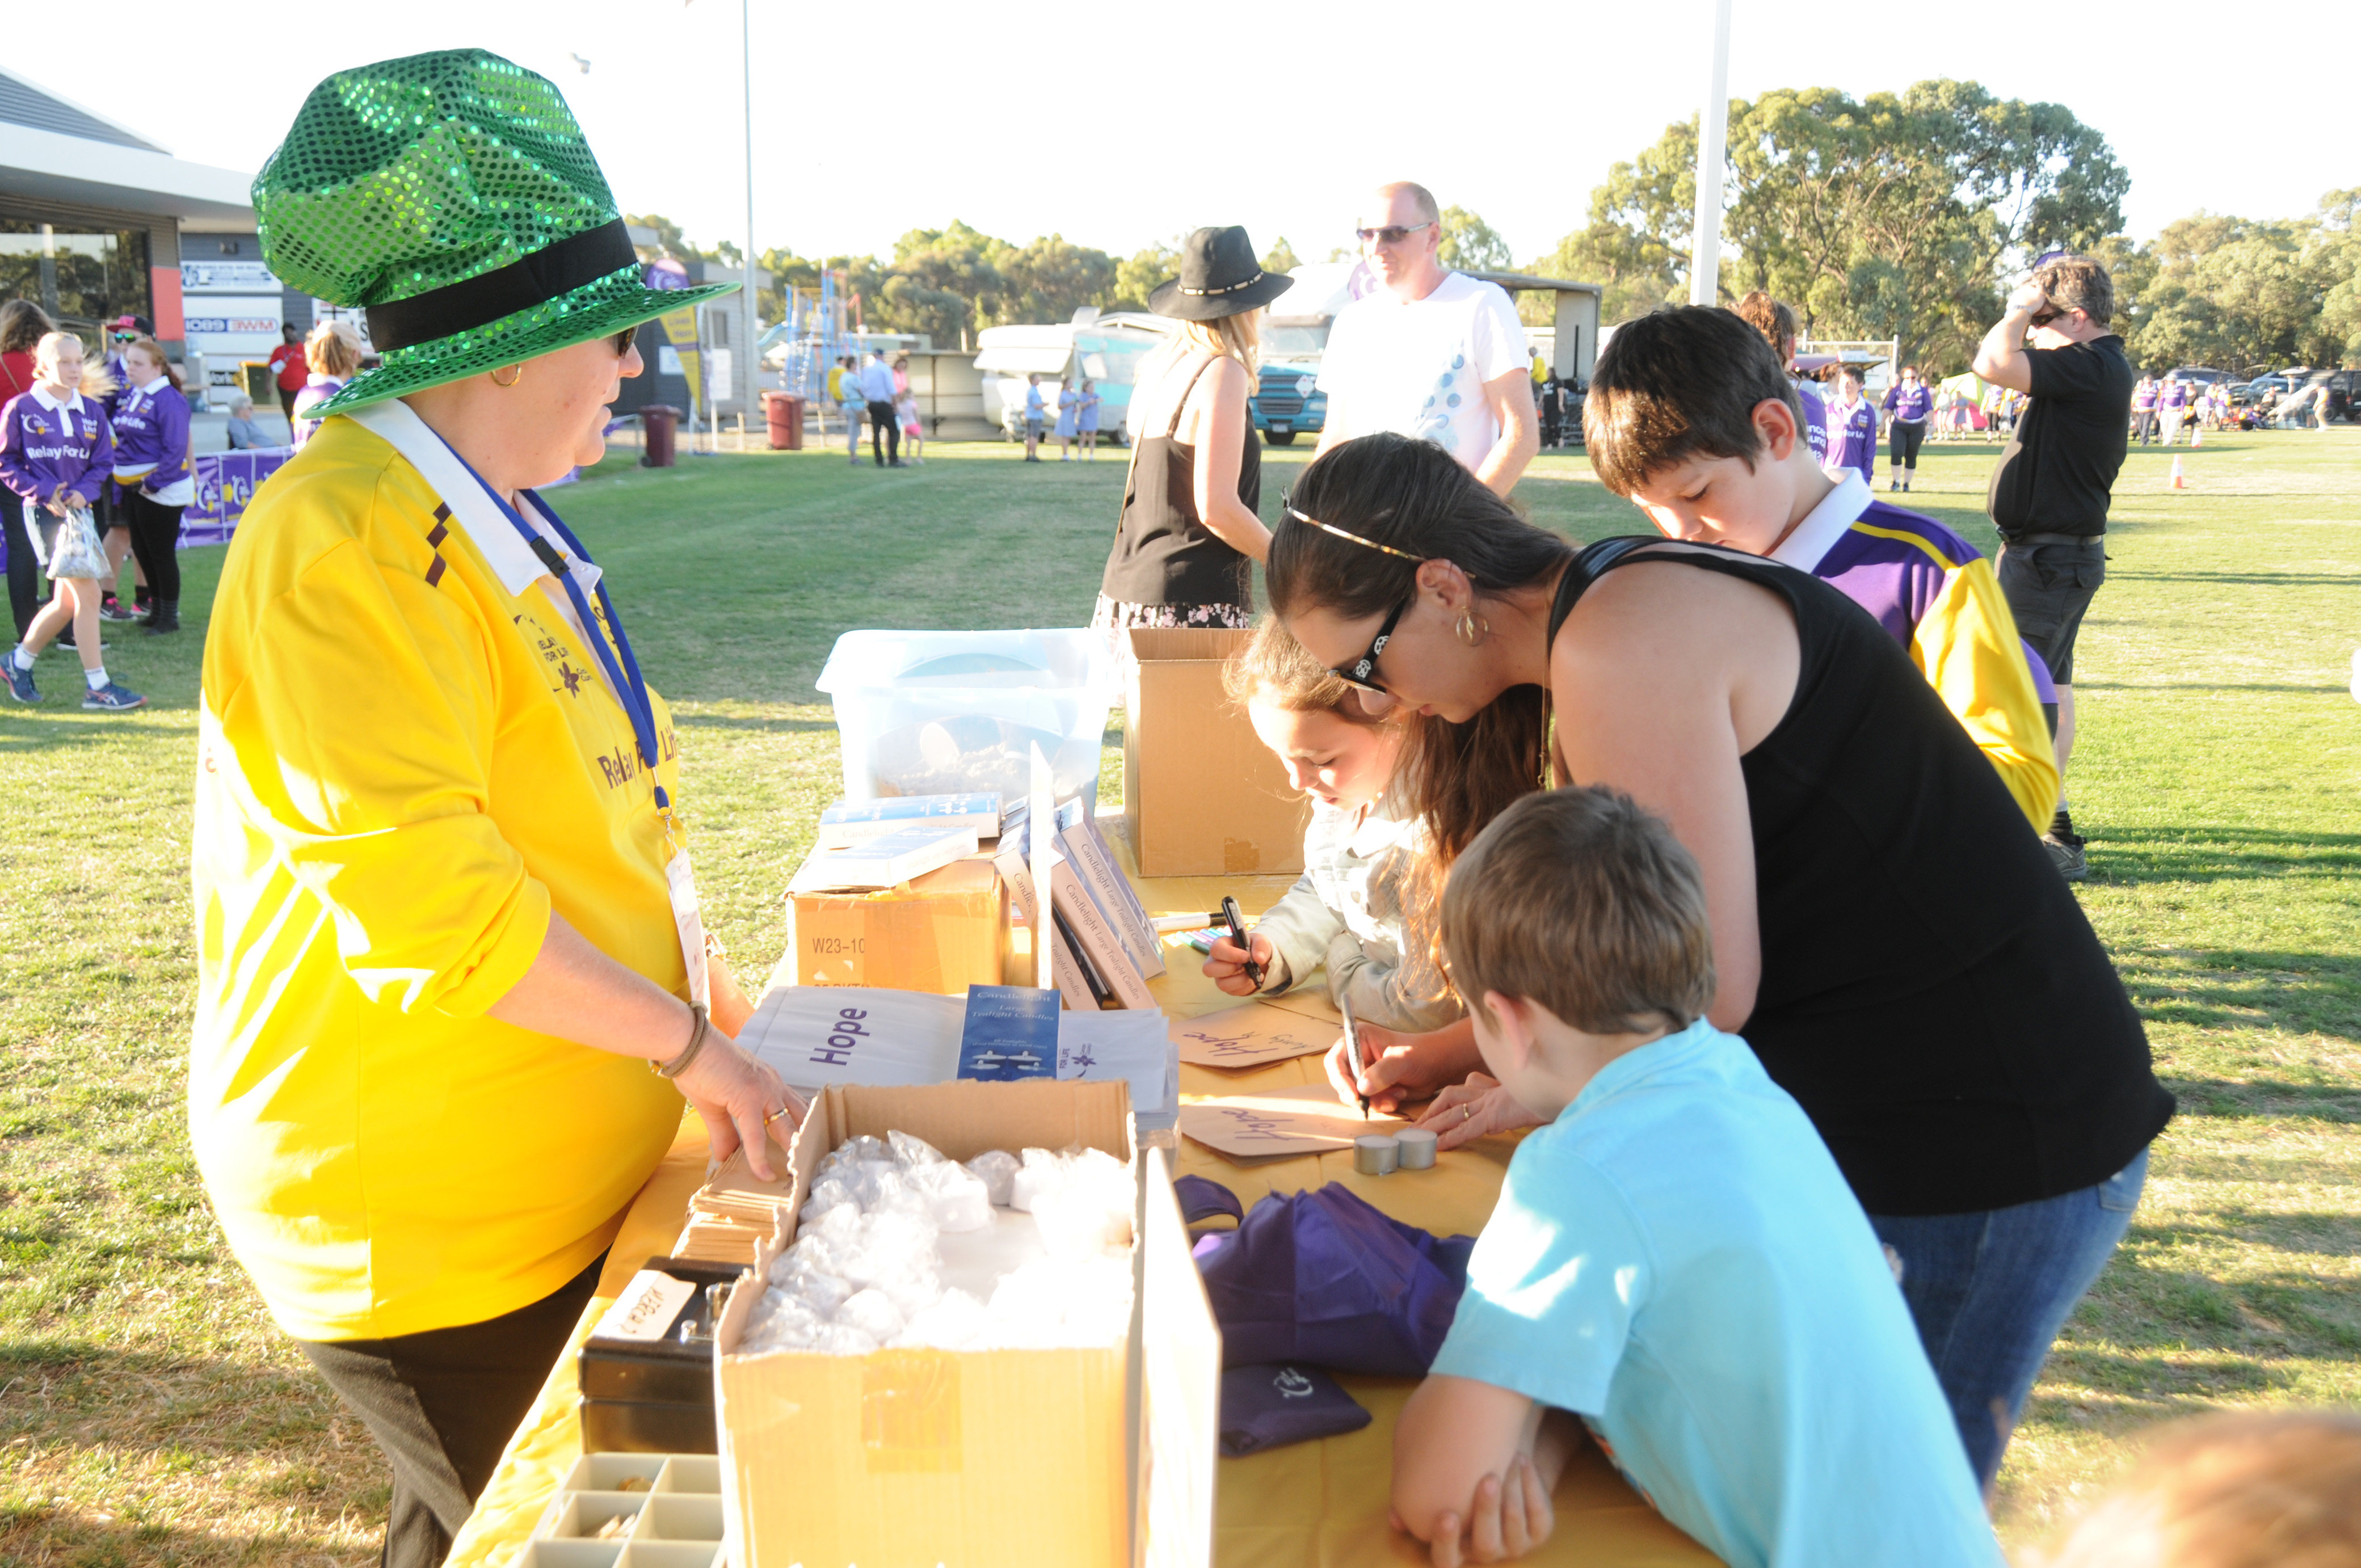 Image - Horsham and District Relay for Life, 170317. Mary Dalgleish, left, helps Ali Gregor create a memoriam for the candlelight ceremony.